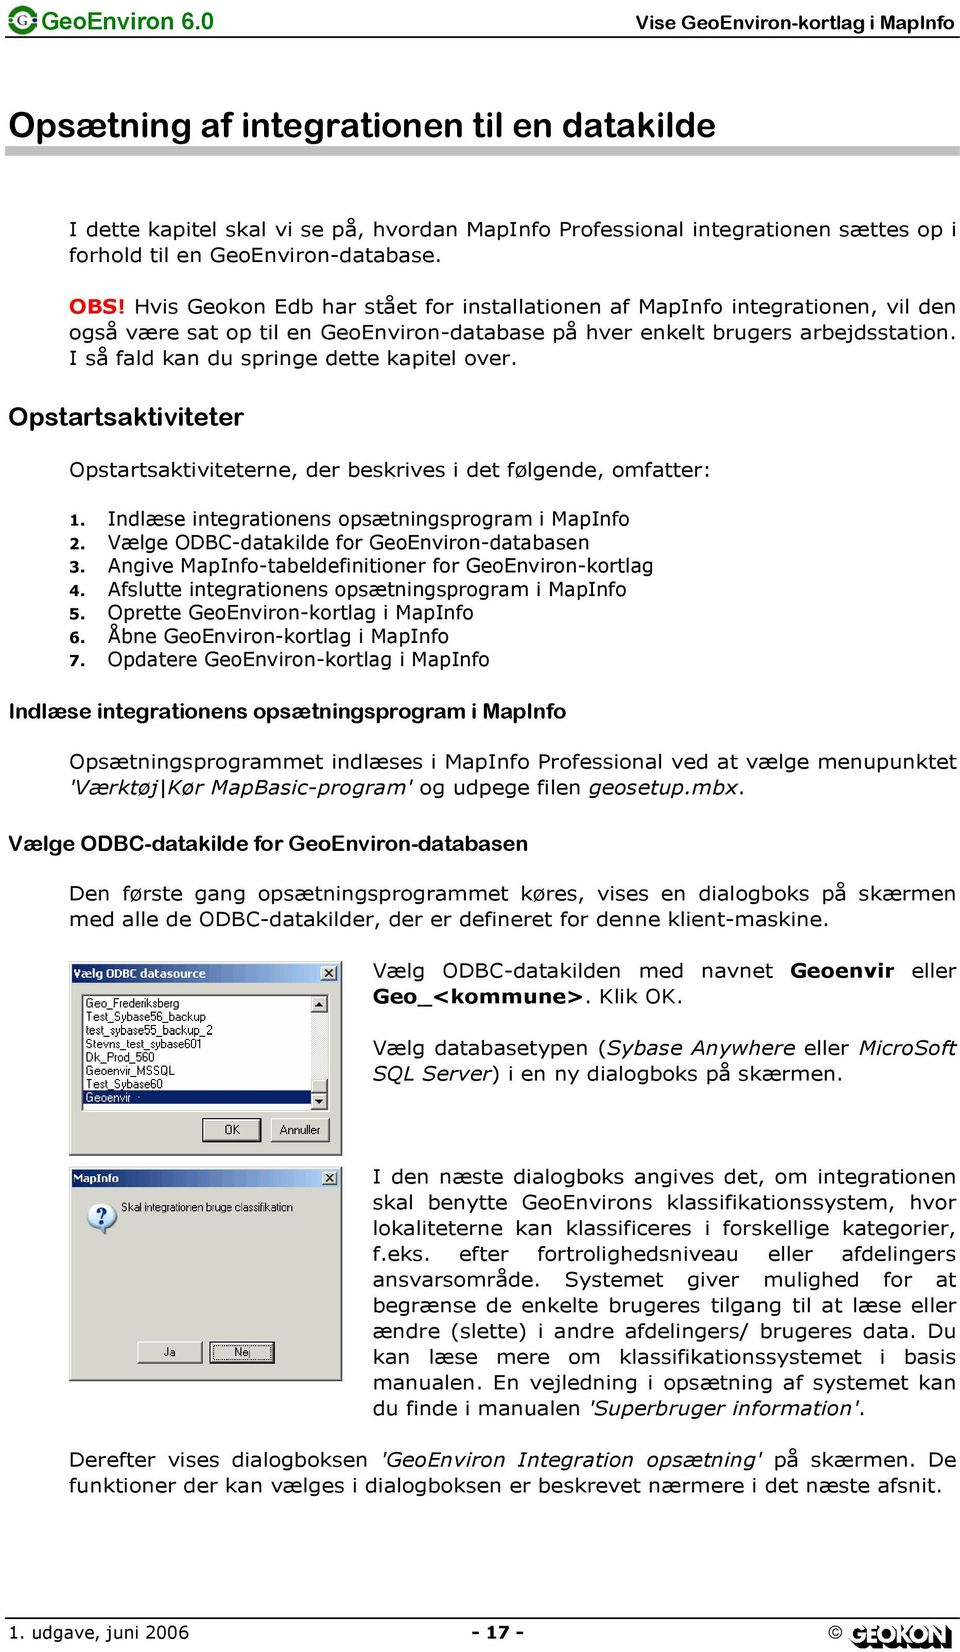 GeoEnviron-database. OBS! Hvis Geokon Edb har stået for installationen af MapInfo integrationen, vil den også være sat op til en GeoEnviron-database på hver enkelt brugers arbejdsstation.